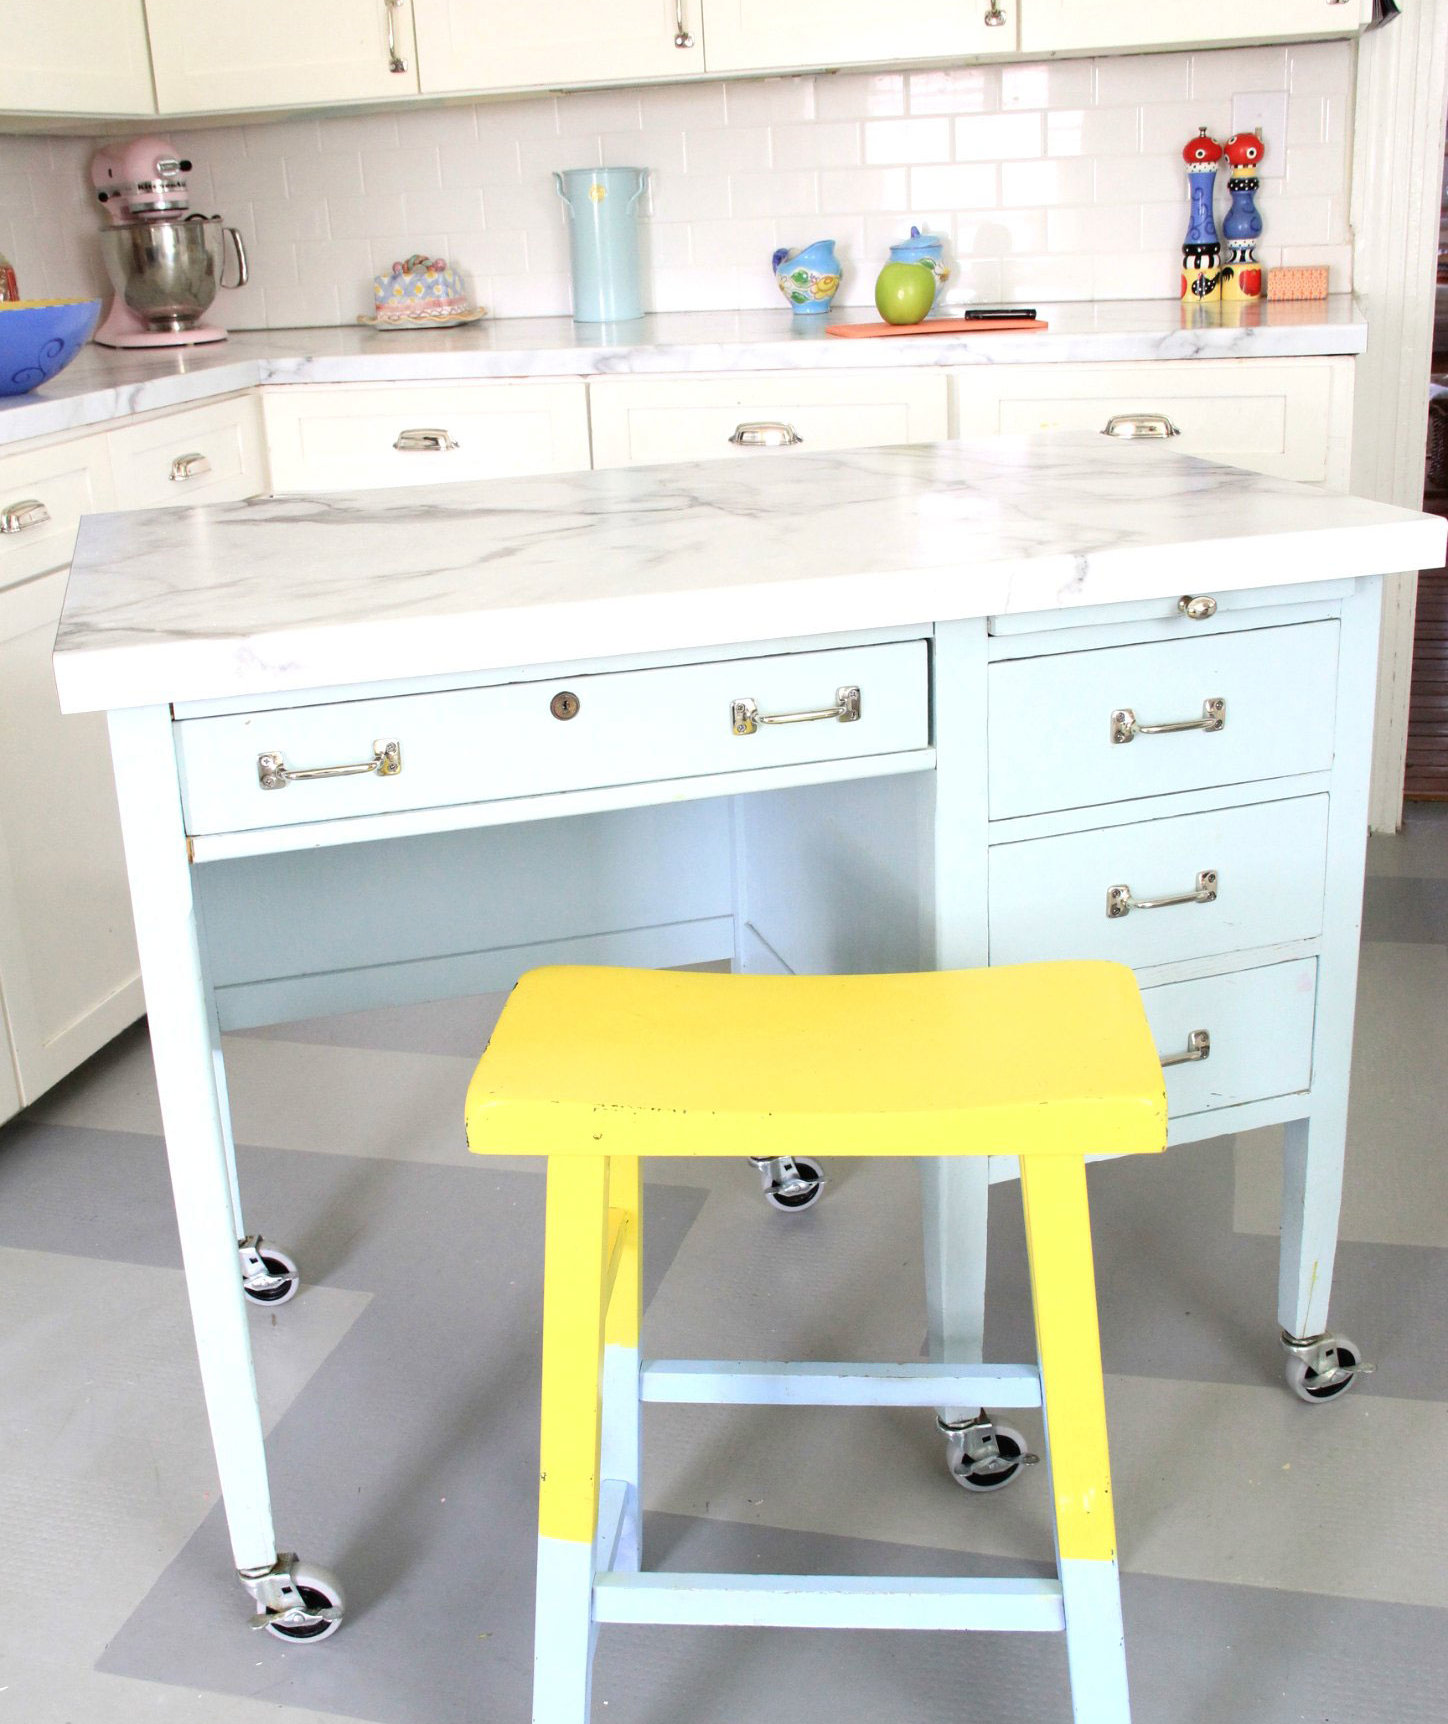 7 DIY Kitchen Islands To Really Maximize Your Space